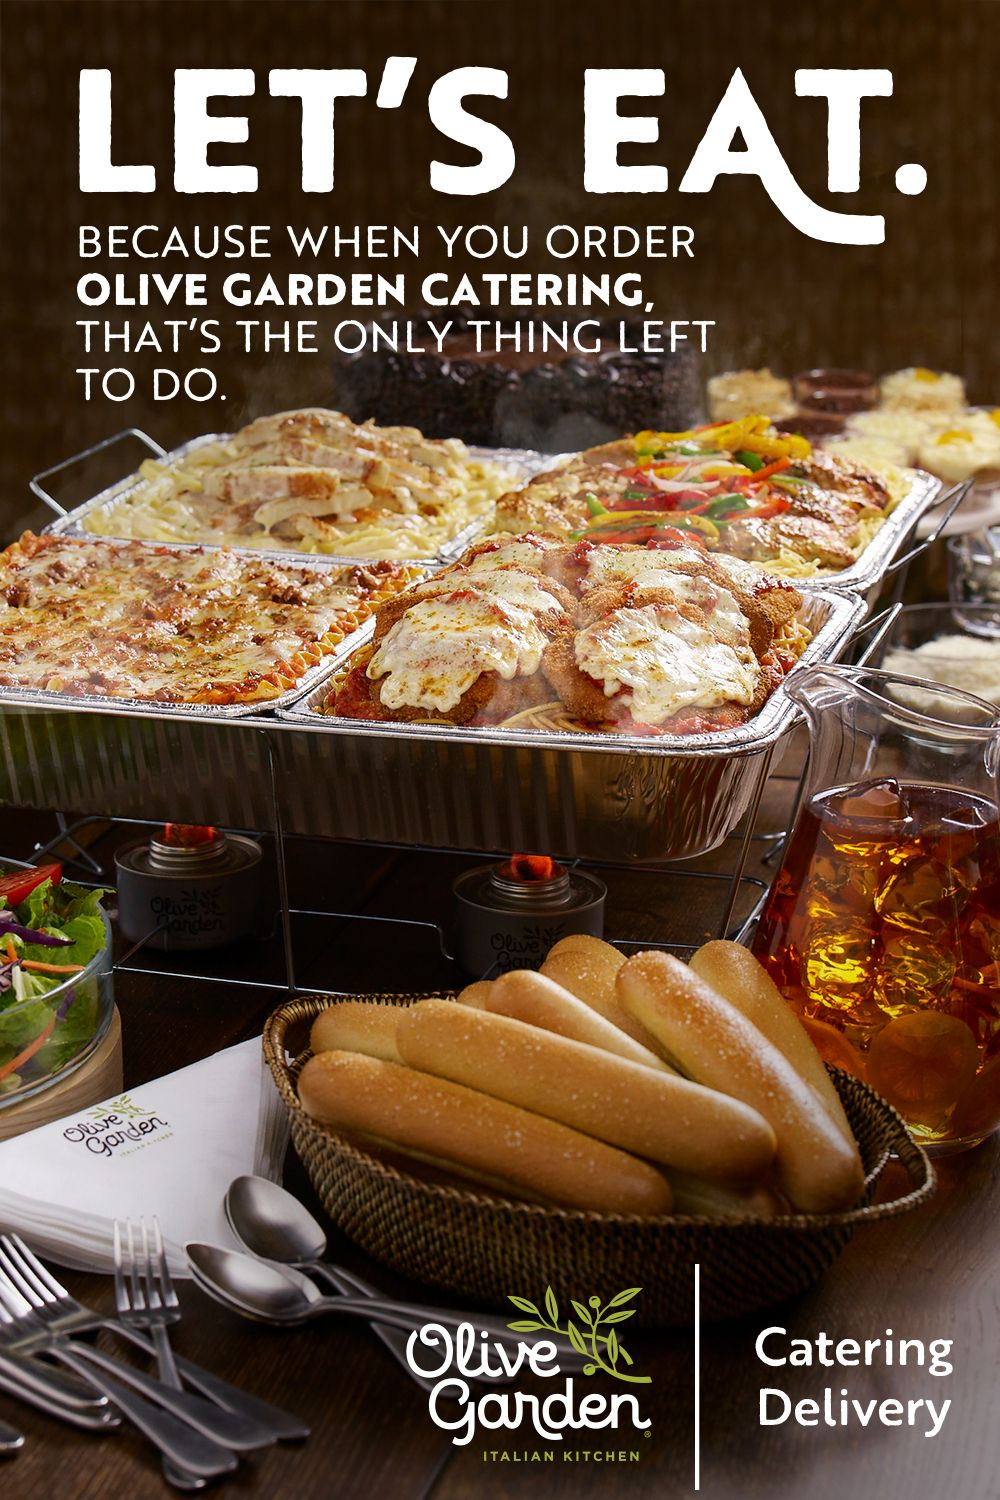 With Olive Garden Catering Holiday Planning And Enjoying Has Never Been Easier You Bring T Holiday Recipes Olive Garden Catering Holiday Appetizers Recipes